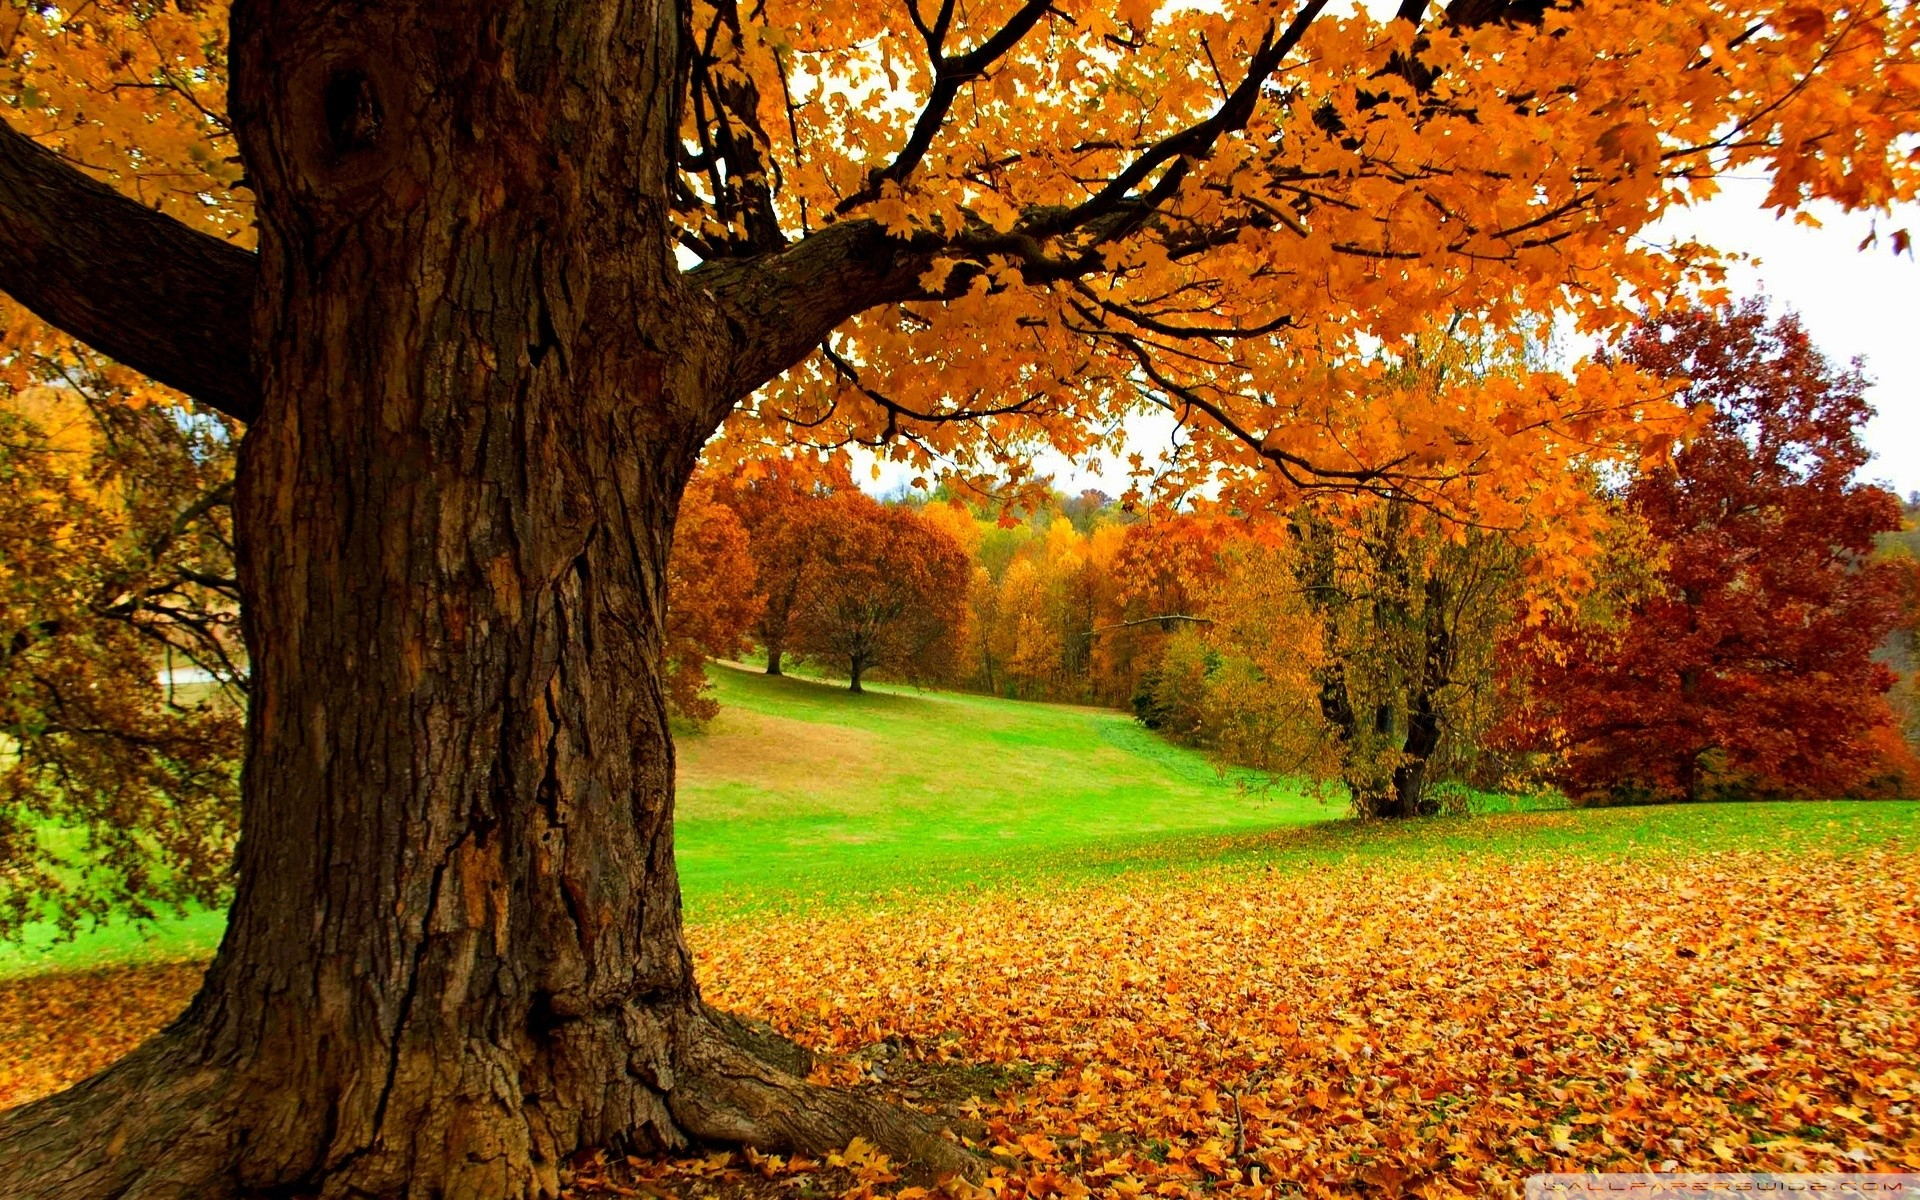 Spectacular autumn scene – HD wallpaper download. Wallpapers, pictures .